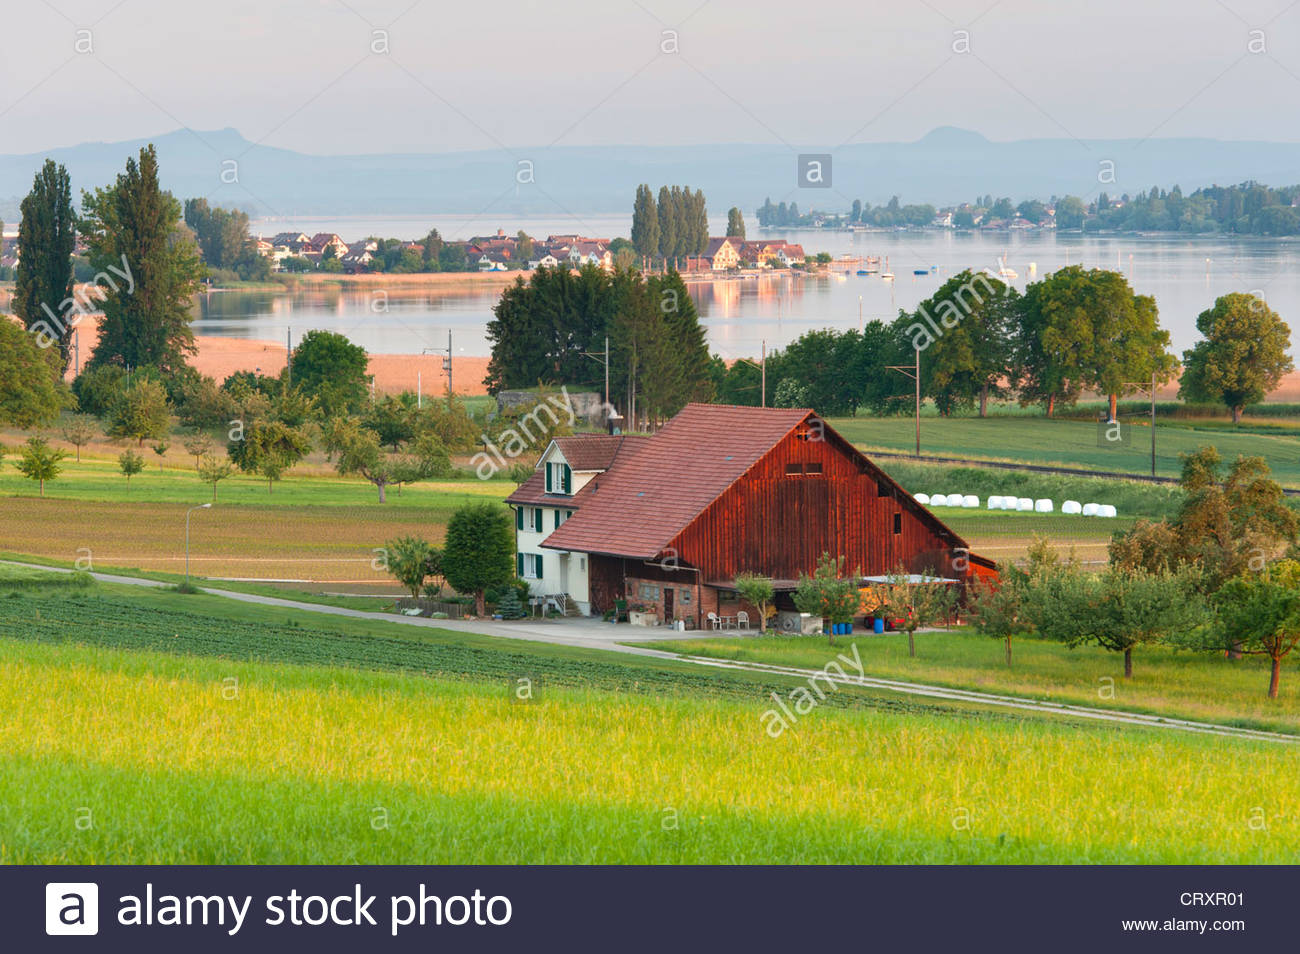 Switzerland, Triboltingen, View of farmstead and village in background - Stock Image